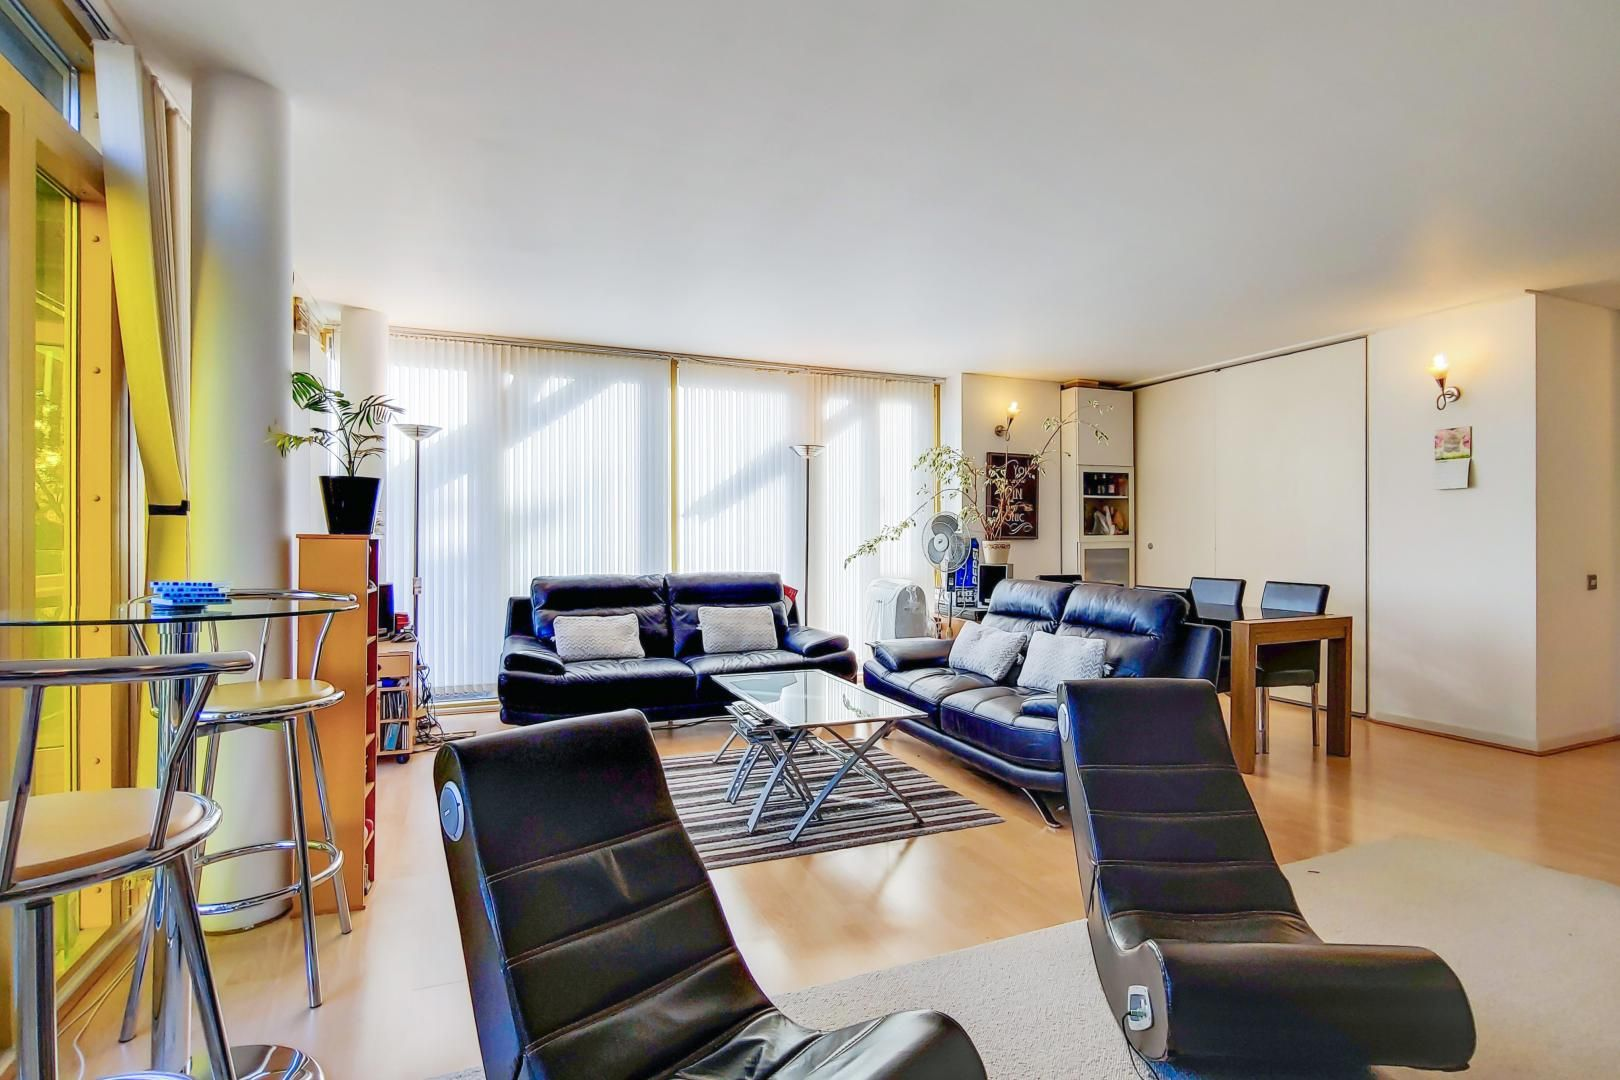 3 bed flat for sale in Becquerel Court - Property Image 1